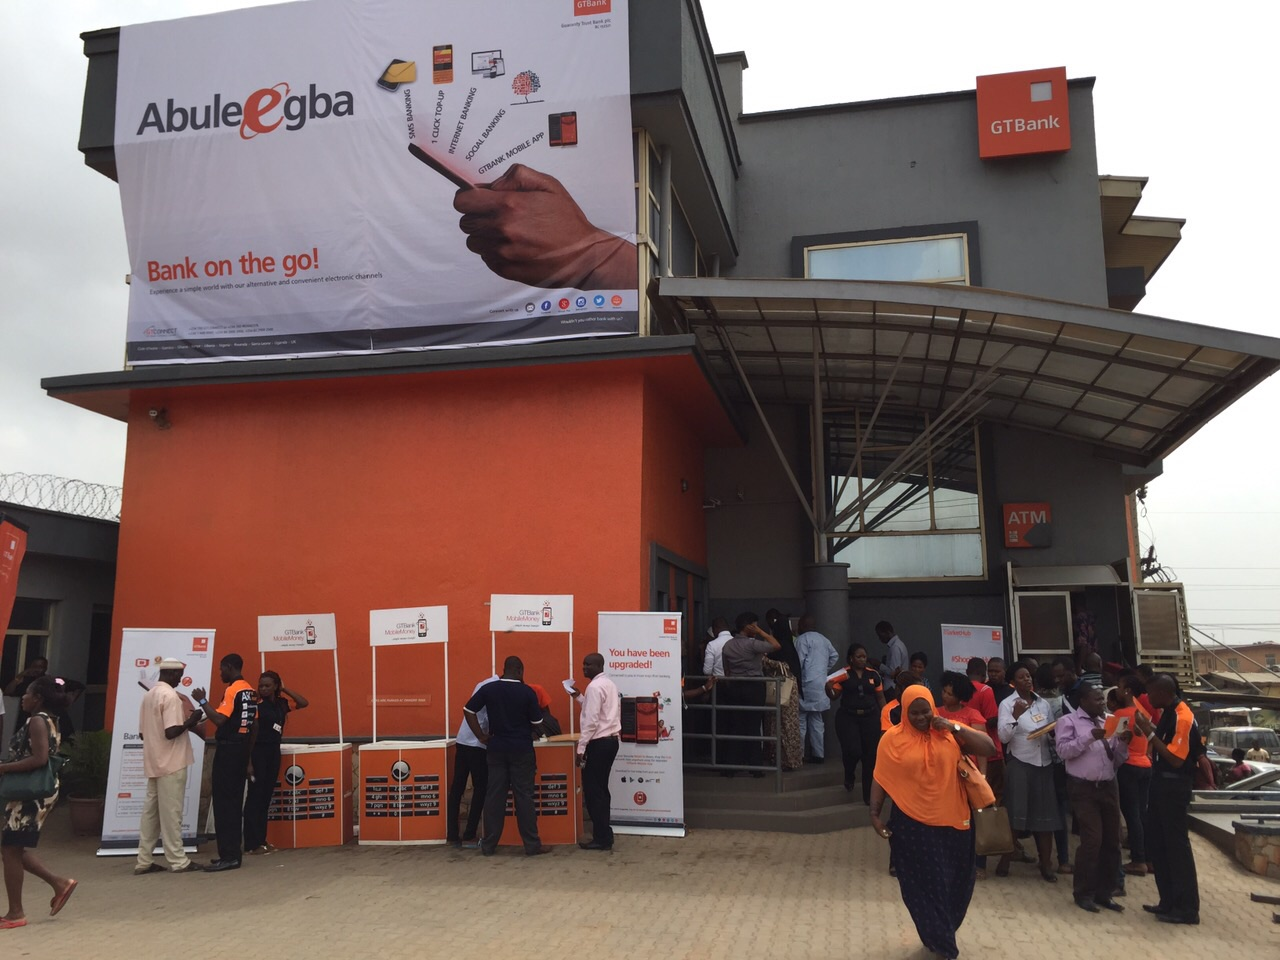 GT Bank's fintech ambitions could lead to a billion-dollar IPO